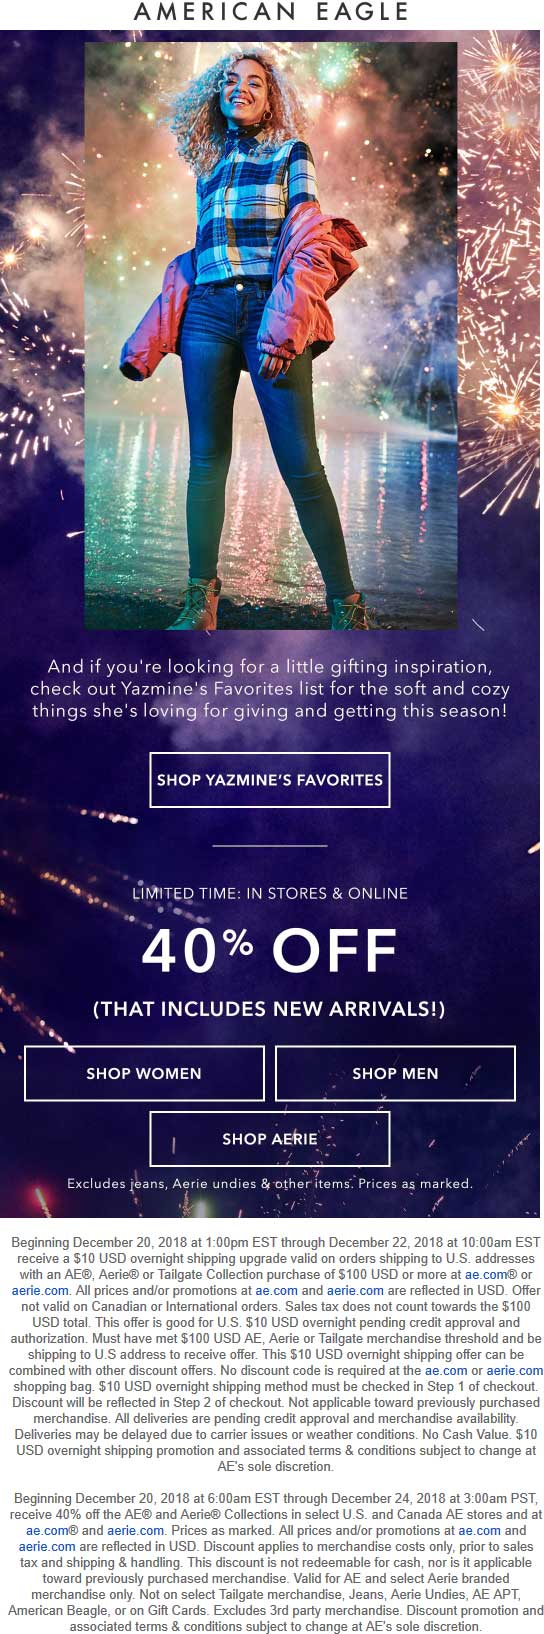 American Eagle Coupon July 2020 40% off at American Eagle, ditto online